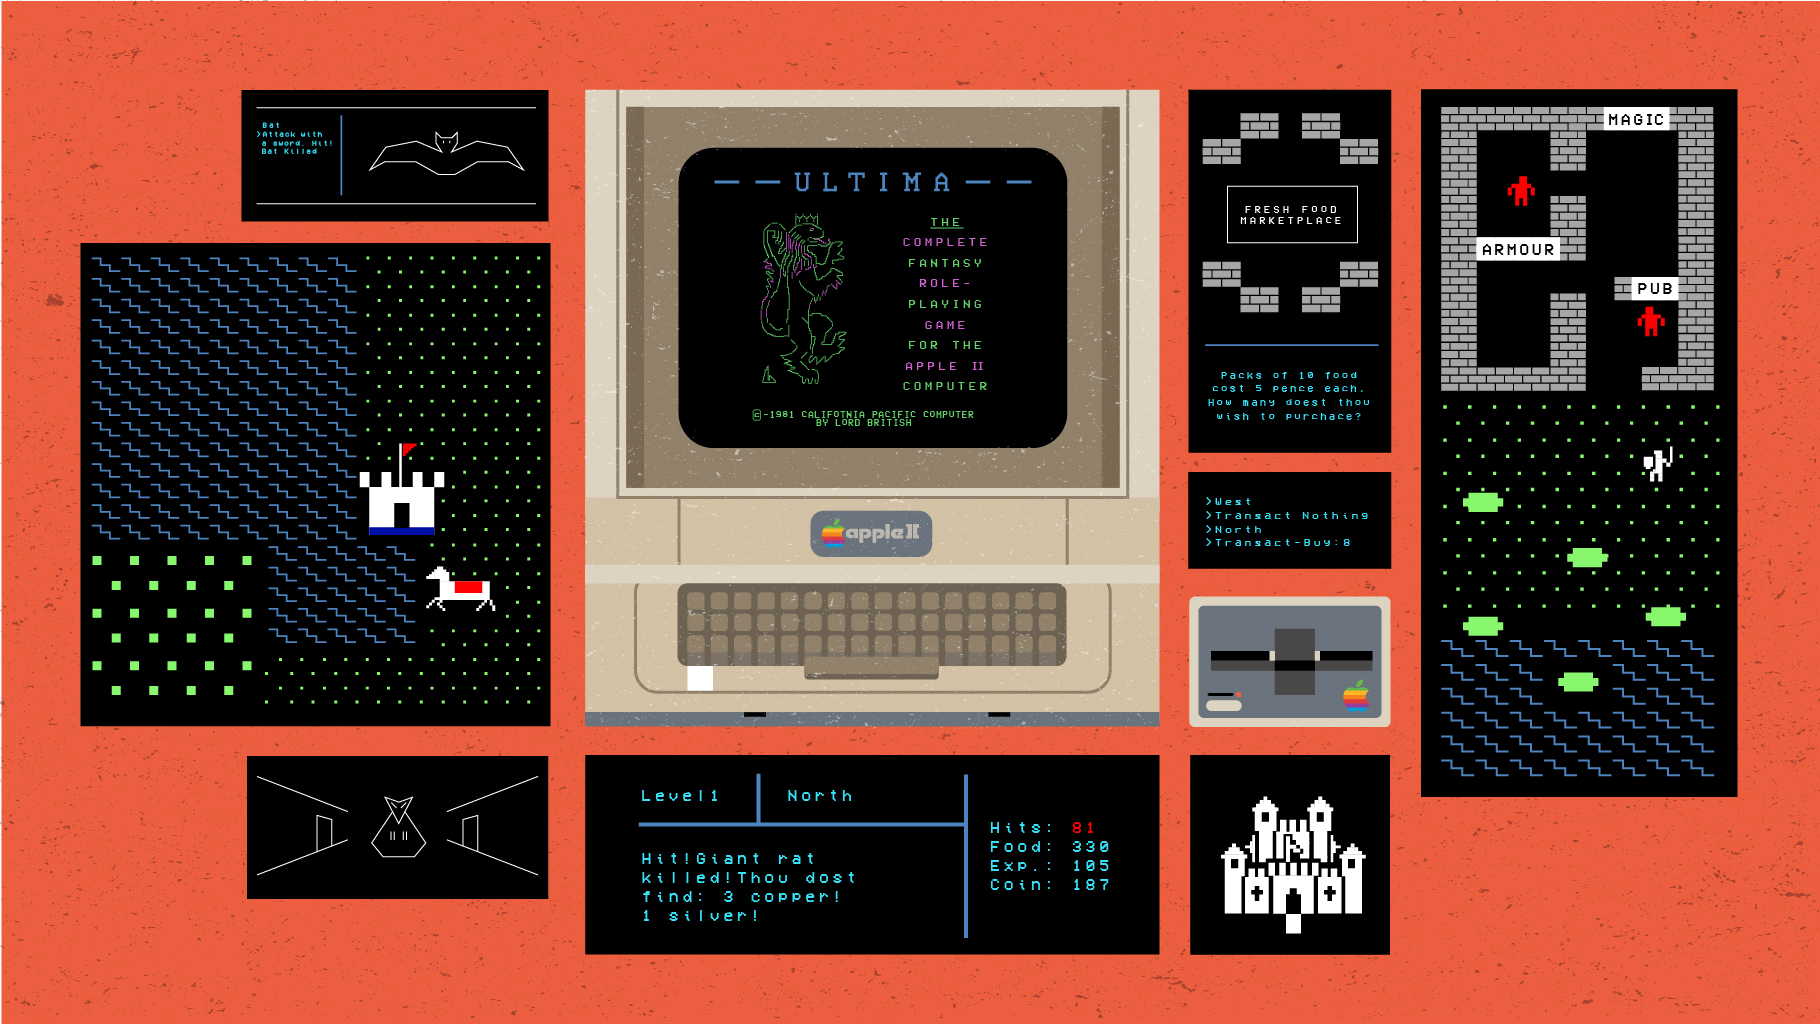 The Saga Begins - In a spiritual sense, Akalabeth had more in common with the D&D series than with Ultima. Like those early programming exercises, it was more about getting a sense of things on a technical basis and feeling out the realities of game design in a new medium. It was only after kicking the Apple II's proverbial tires with Akalabeth that Garriott would finally go on to create his first truly notable game, the original Ultima. A much larger adventure than Akalabeth, Ultima required Garriott to make use of all the game making tricks he had learned to that point.